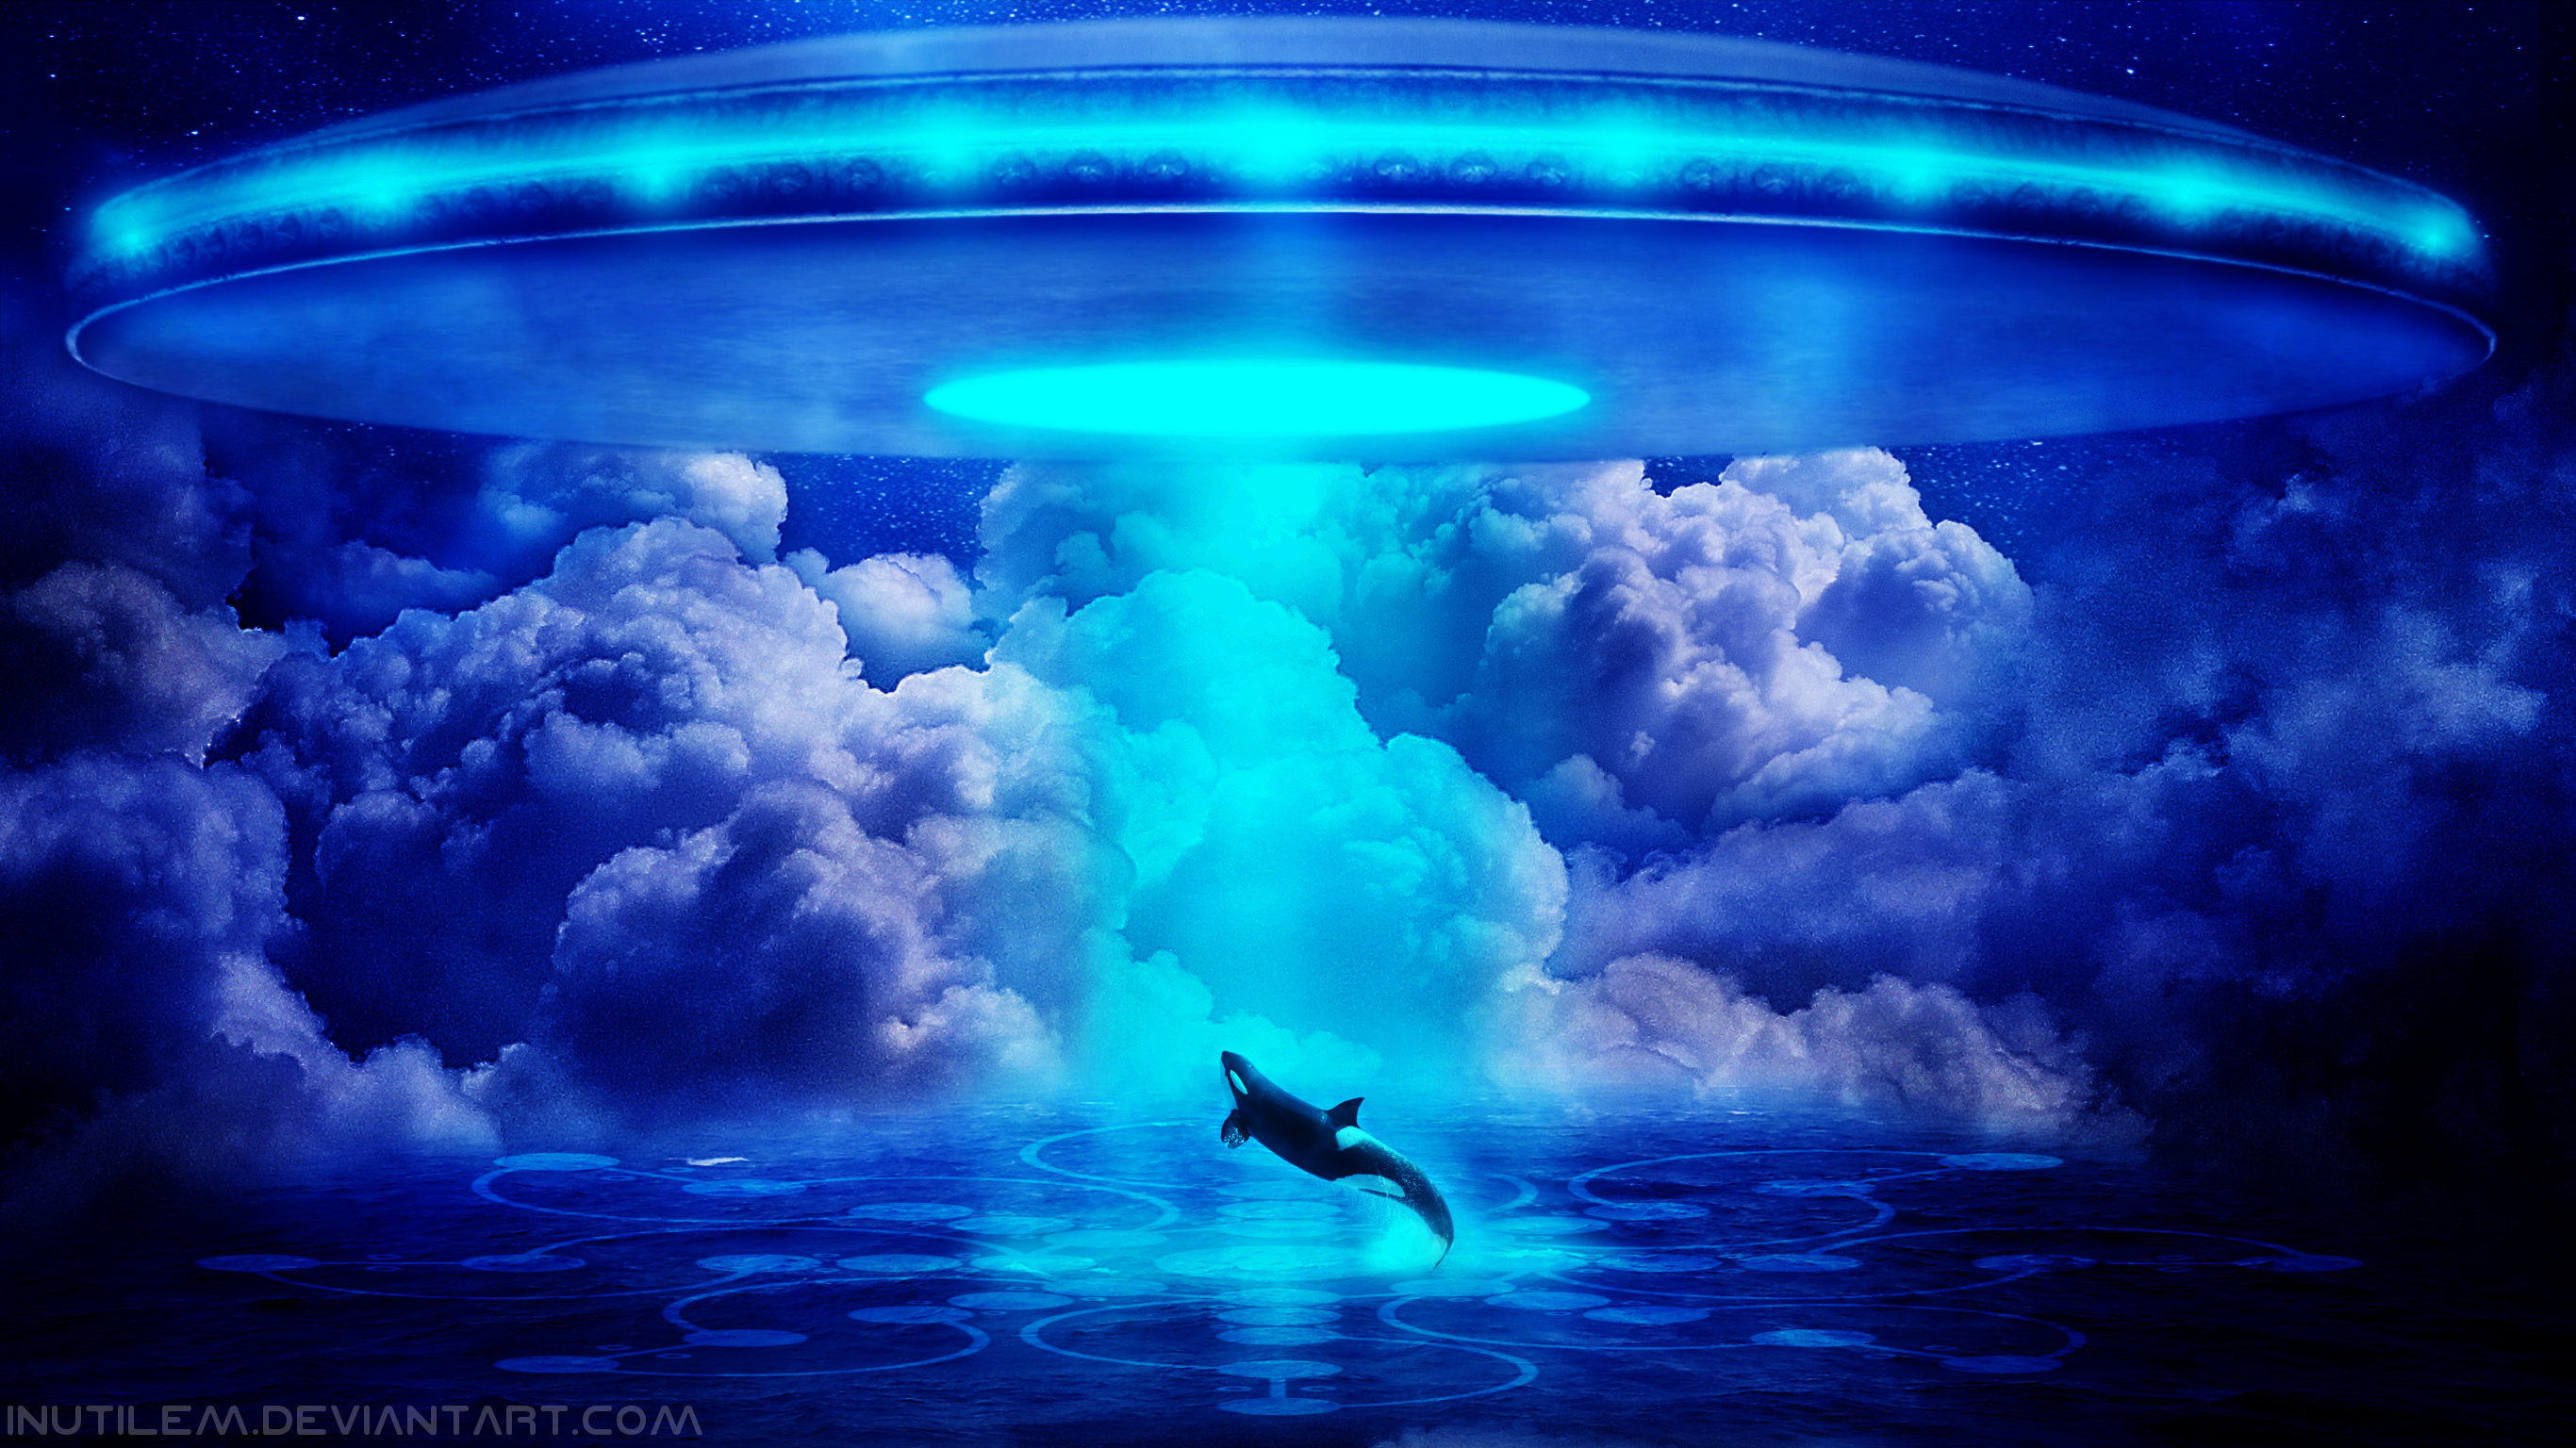 Oceanic Abduction HD Wallpaper Background Image 2732x1536 ID 2732x1536